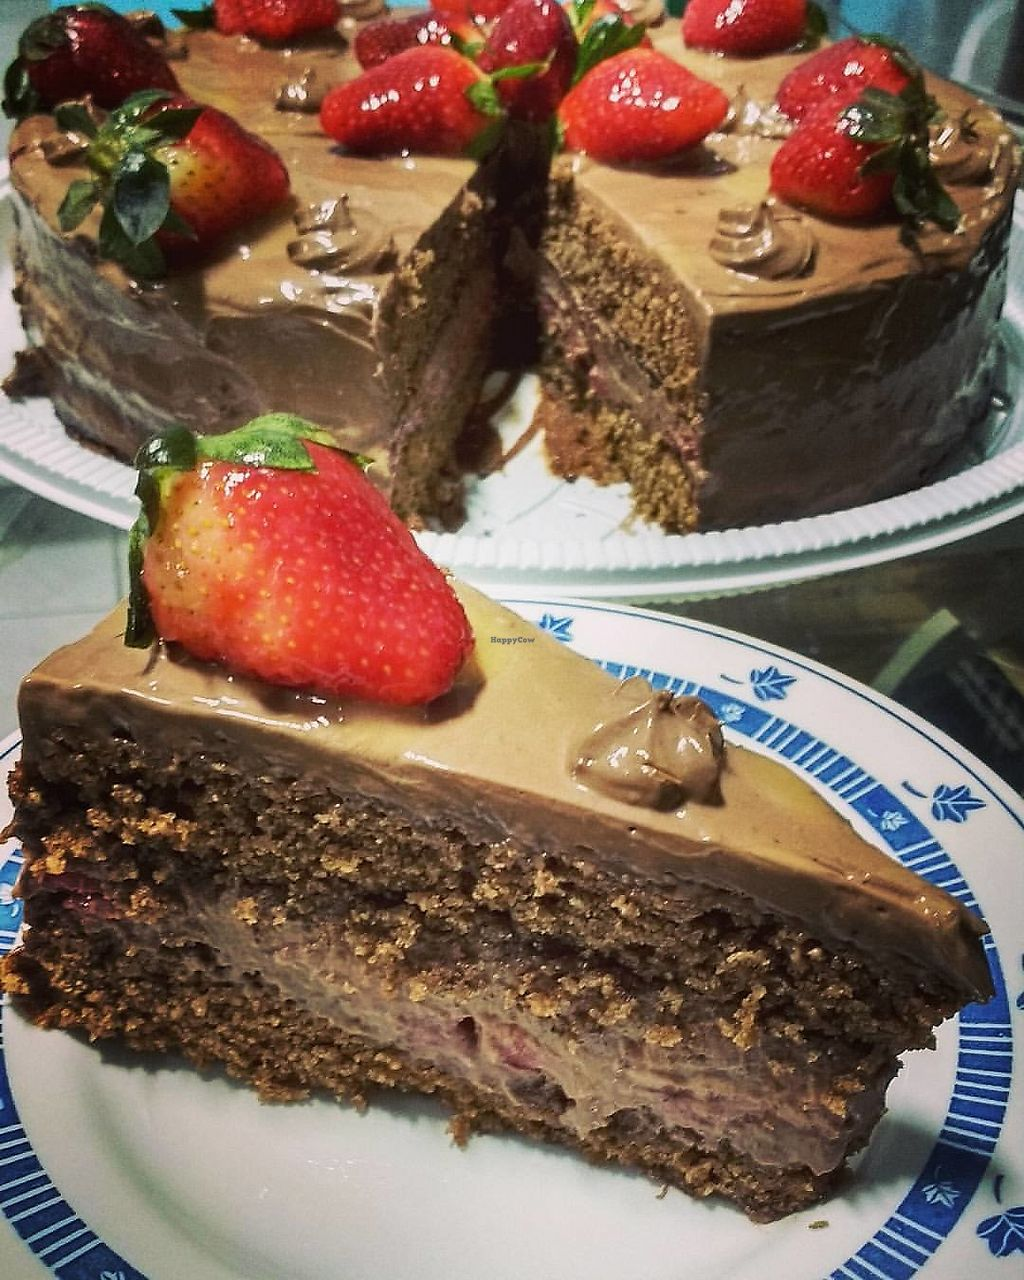 "Photo of AMO Cafe Vegano  by <a href=""/members/profile/PedroStellet"">PedroStellet</a> <br/>Strawberry Chocolate cake <br/> October 20, 2017  - <a href='/contact/abuse/image/103283/316991'>Report</a>"